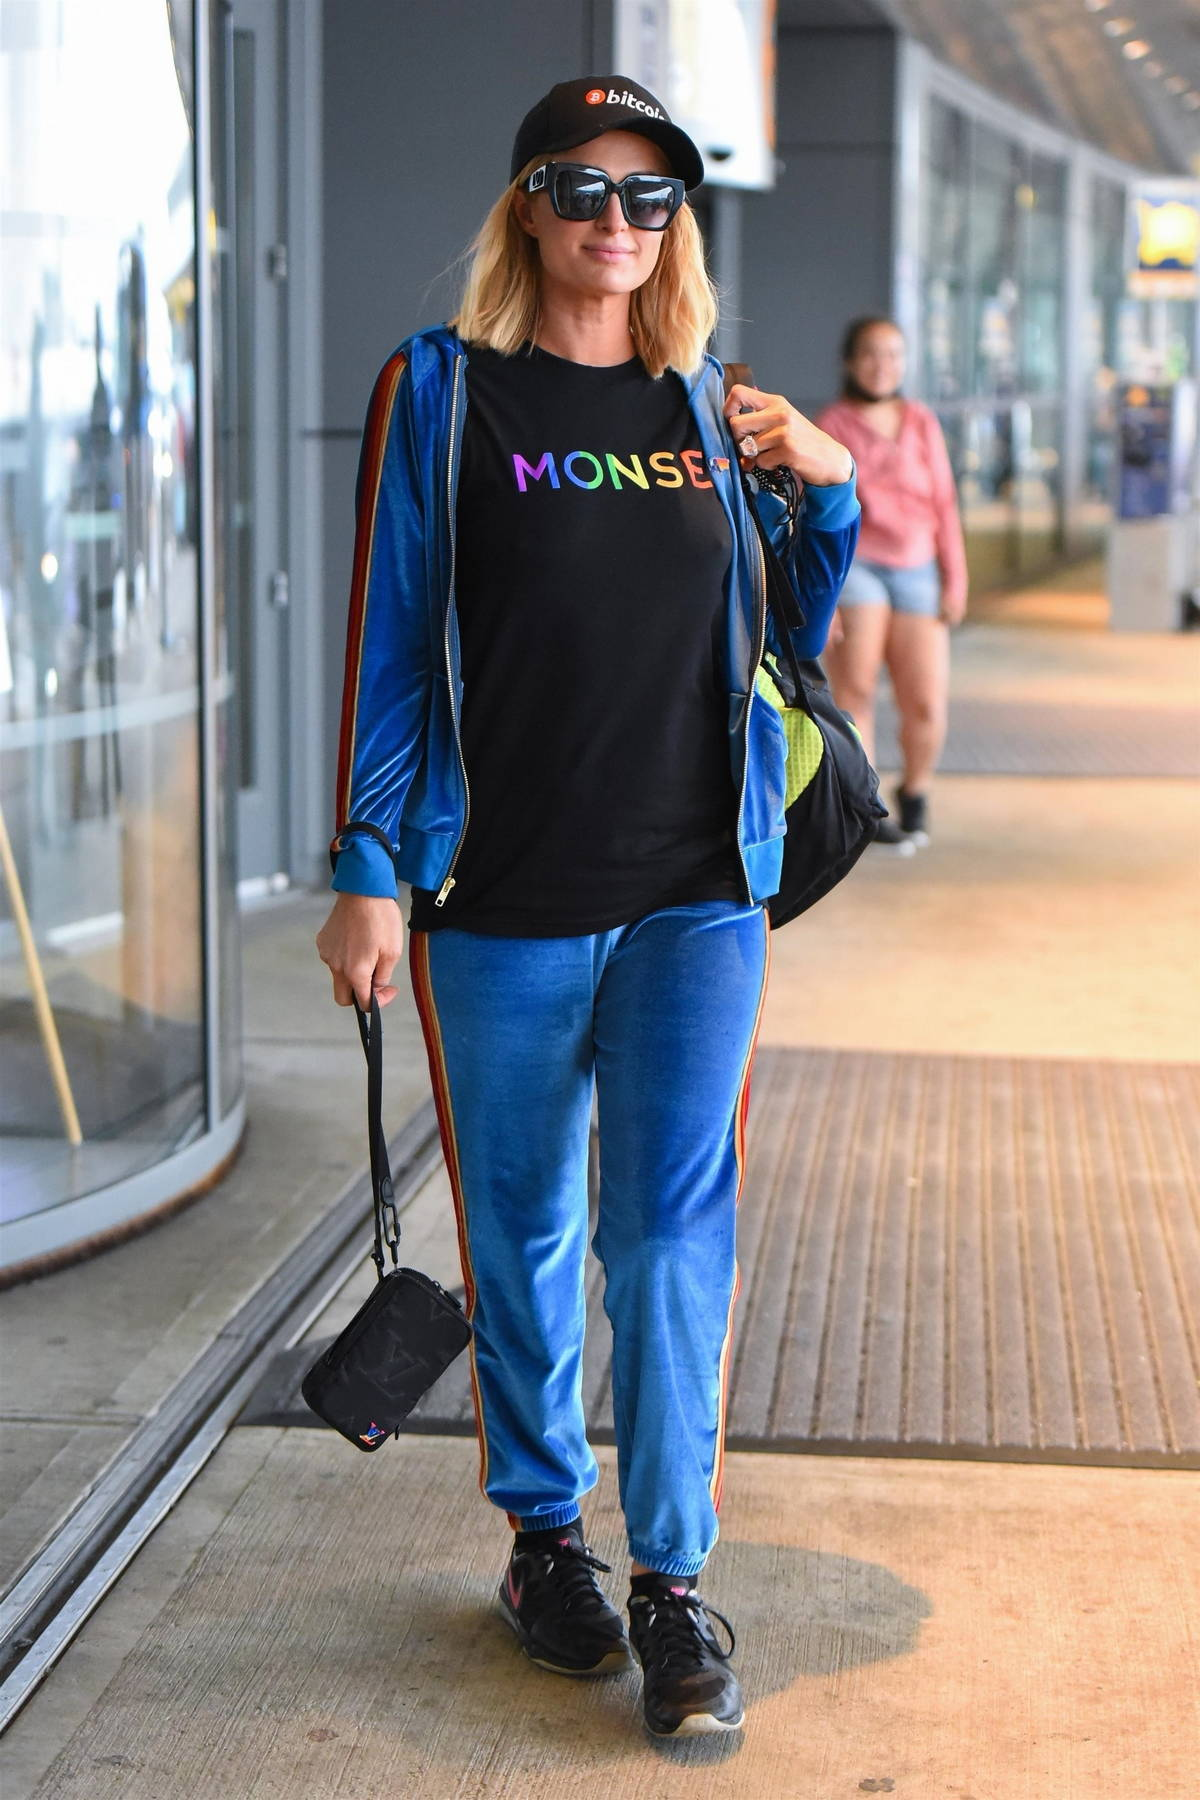 Paris Hilton keeps it casual chic in blue designer tracksuit as she arrives for a flight out of JFK Airport in New York City